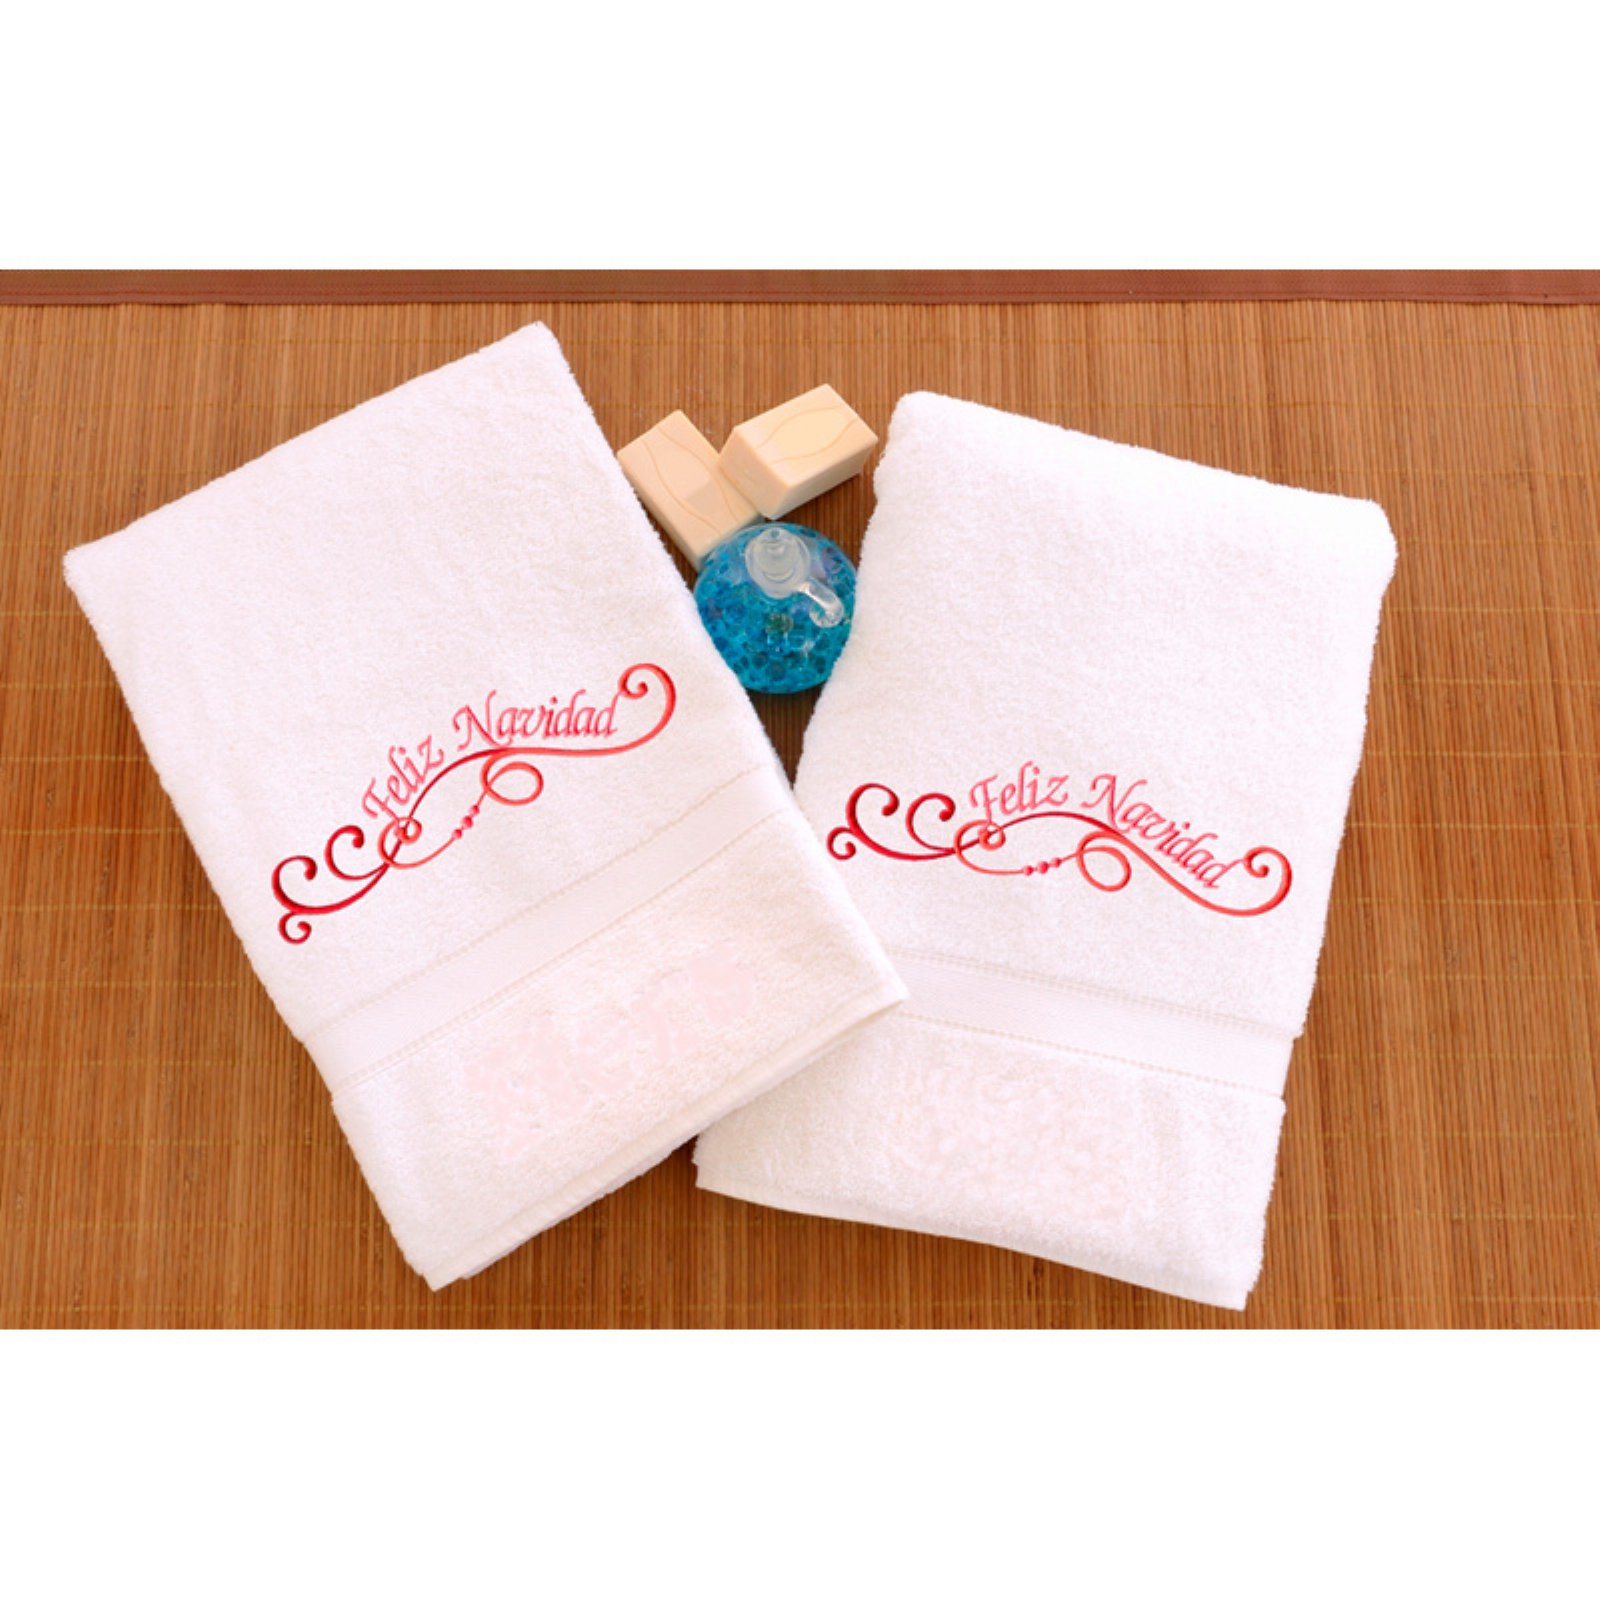 Embroidered Hand Towels with Feliz Navidad Swirls - Set of 2